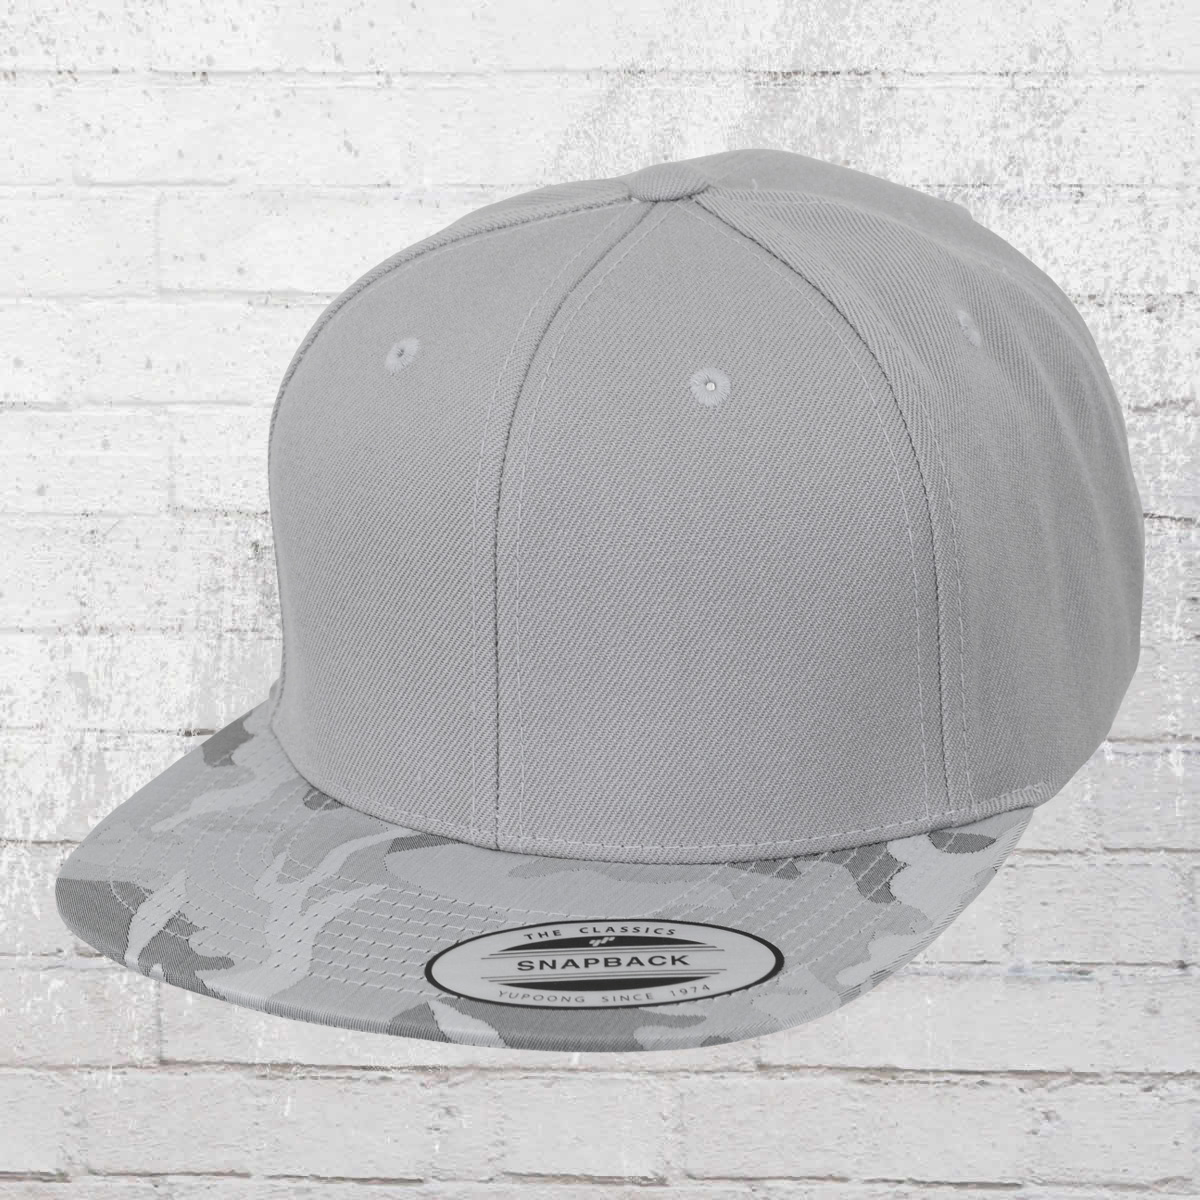 6a263cb39b2 Yupoong by Flexfit Hat Classic Snapback Camo Visor Cap light grey. ›‹ «